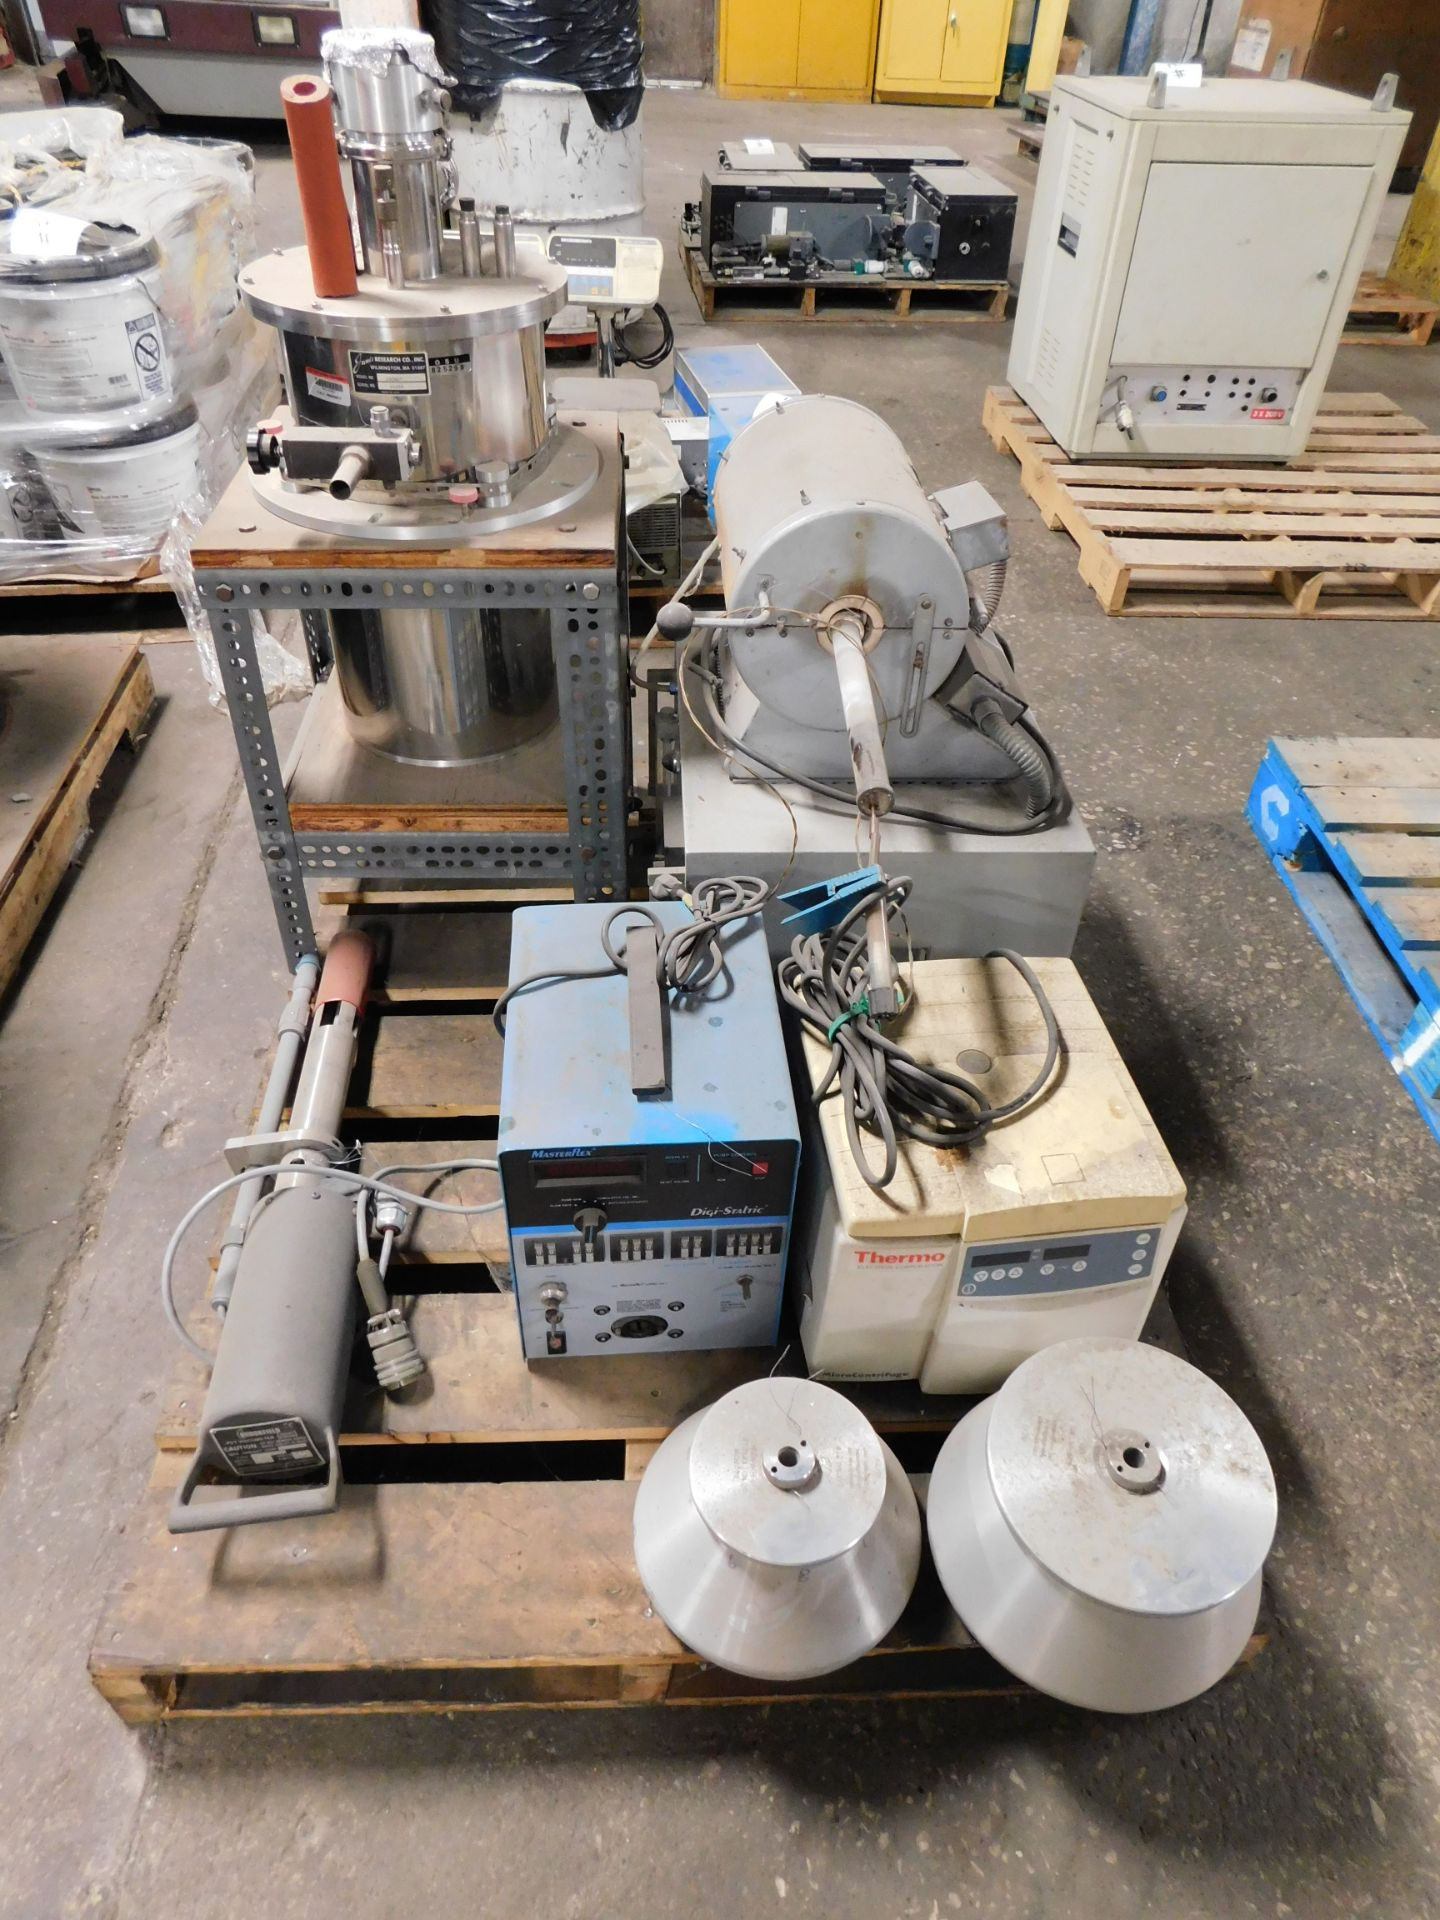 Miscellaneous Lab Equipment-Masterflex Pump, Heraeus Oven, Janis Cryo Tank, Brookfield Probe, Thermo